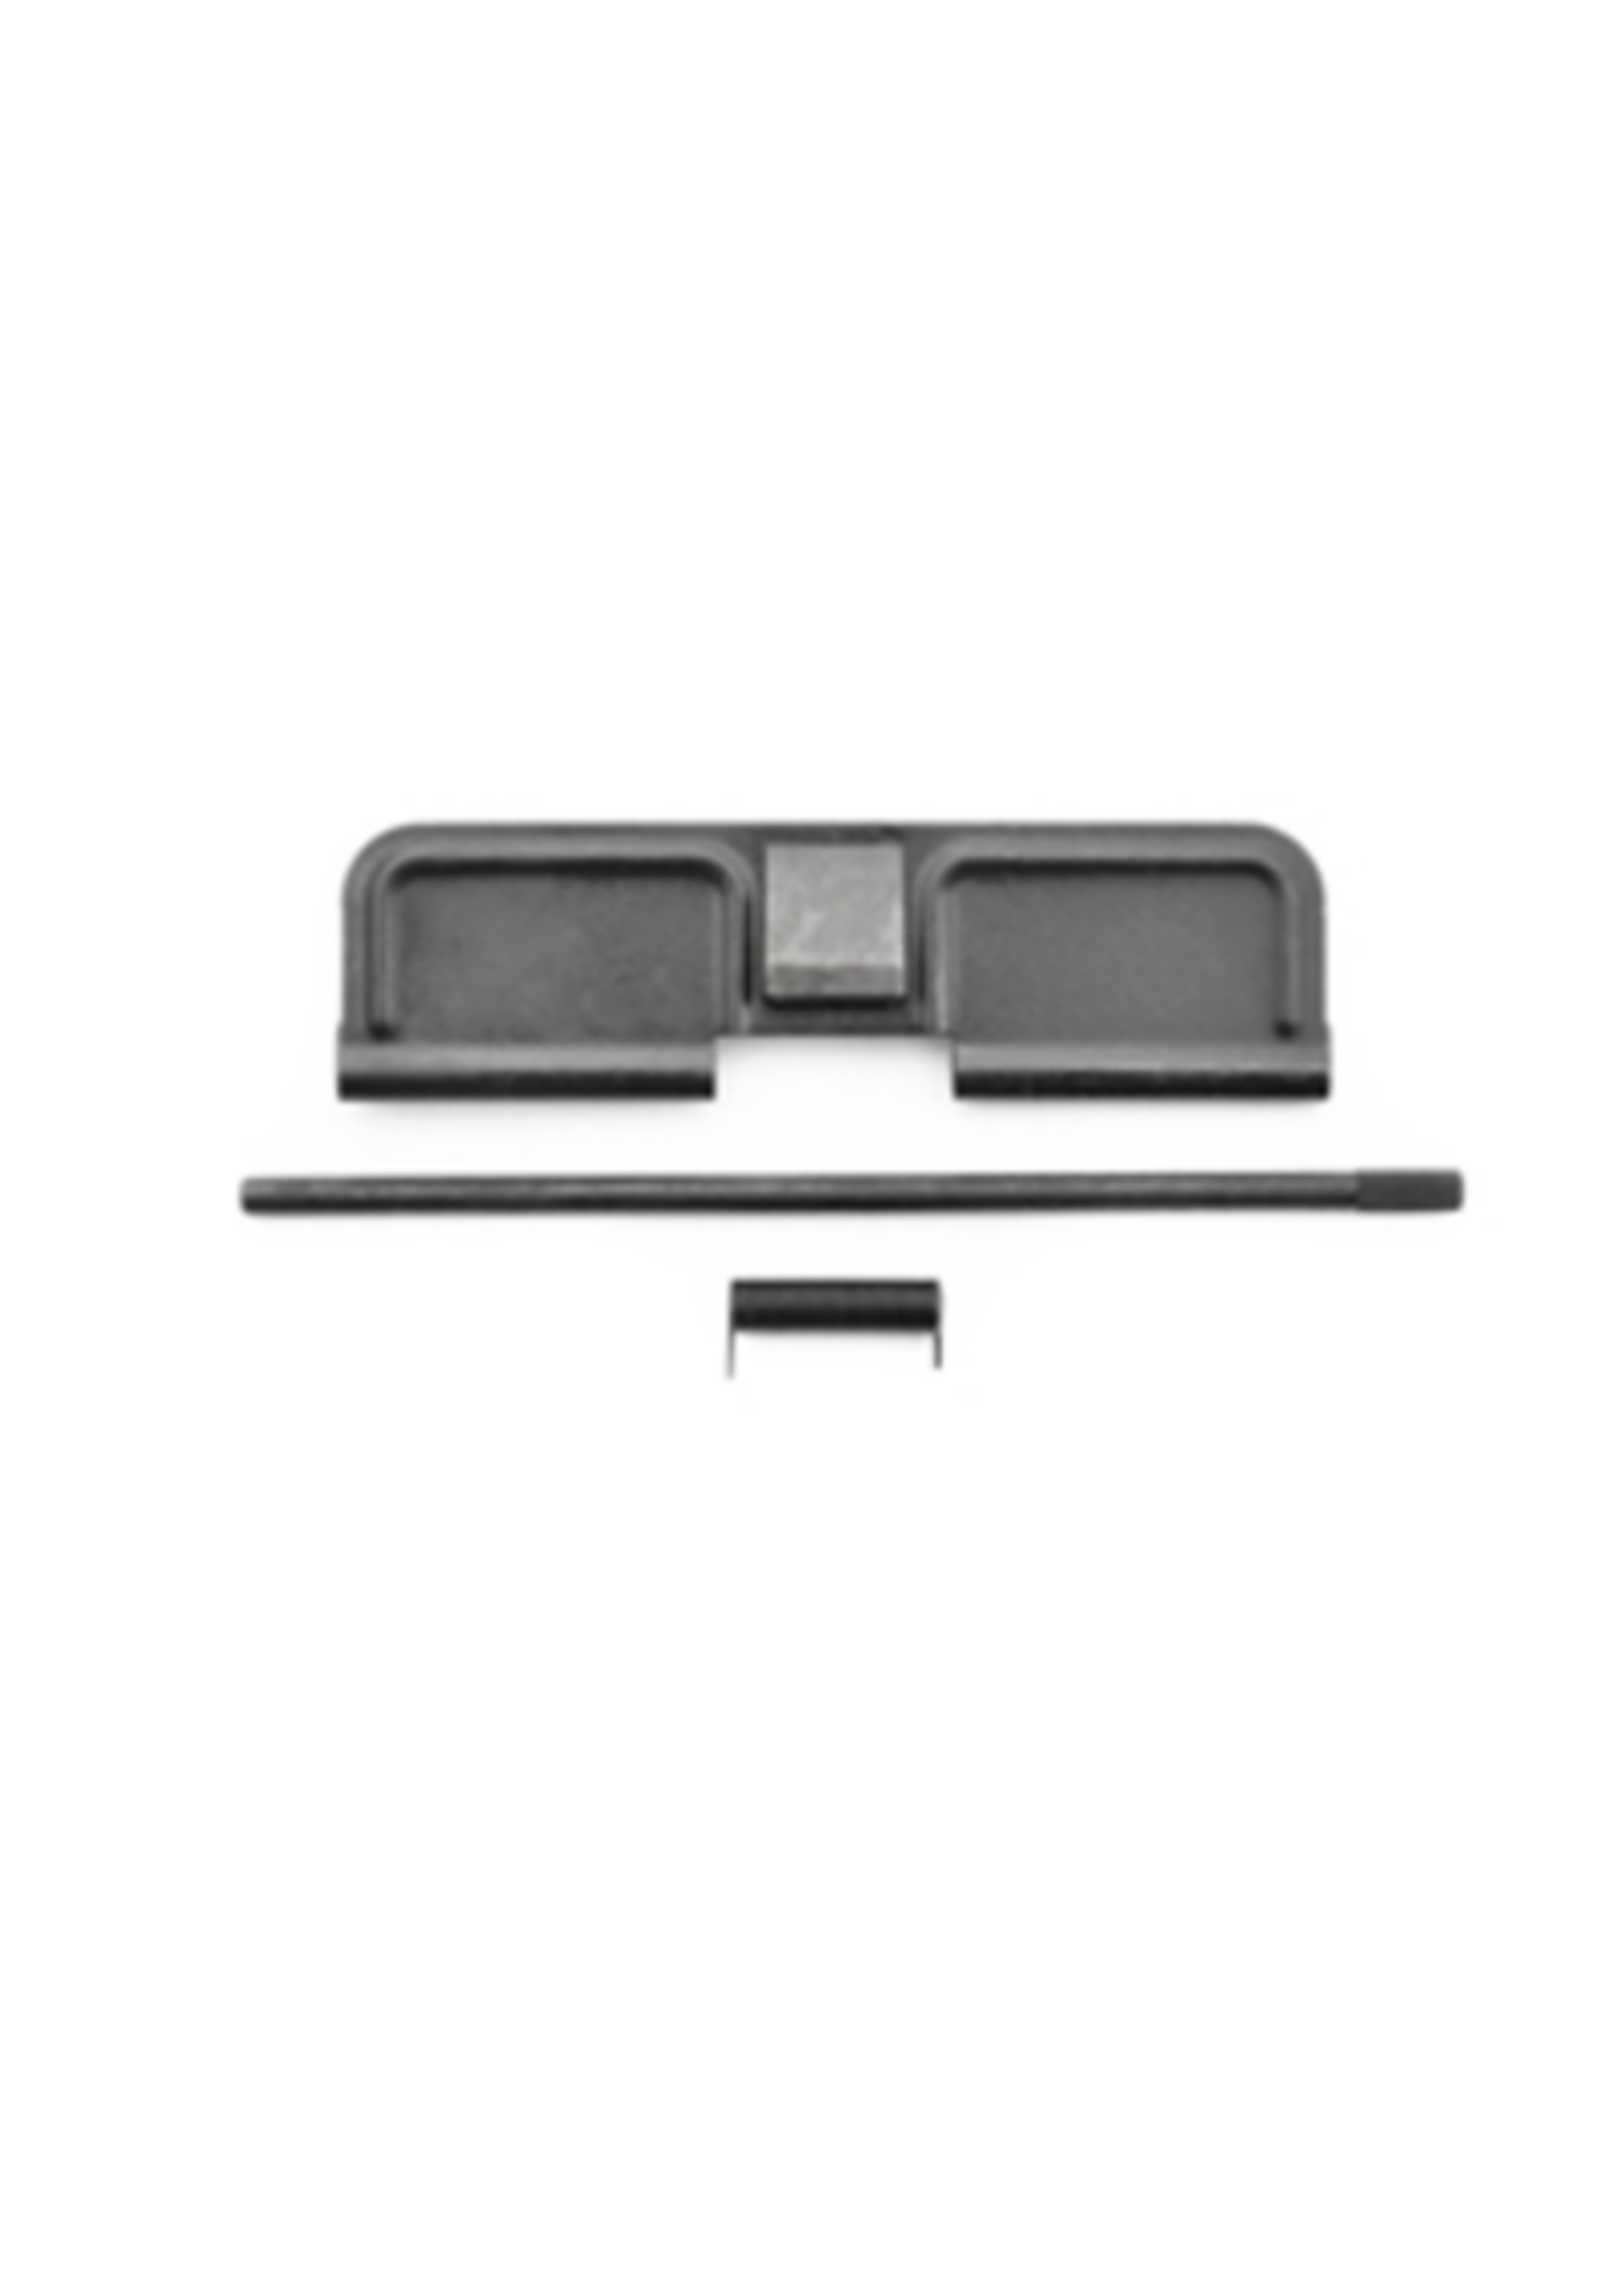 Disruptive Tactical DT15 EJECTION PORT COVER KIT